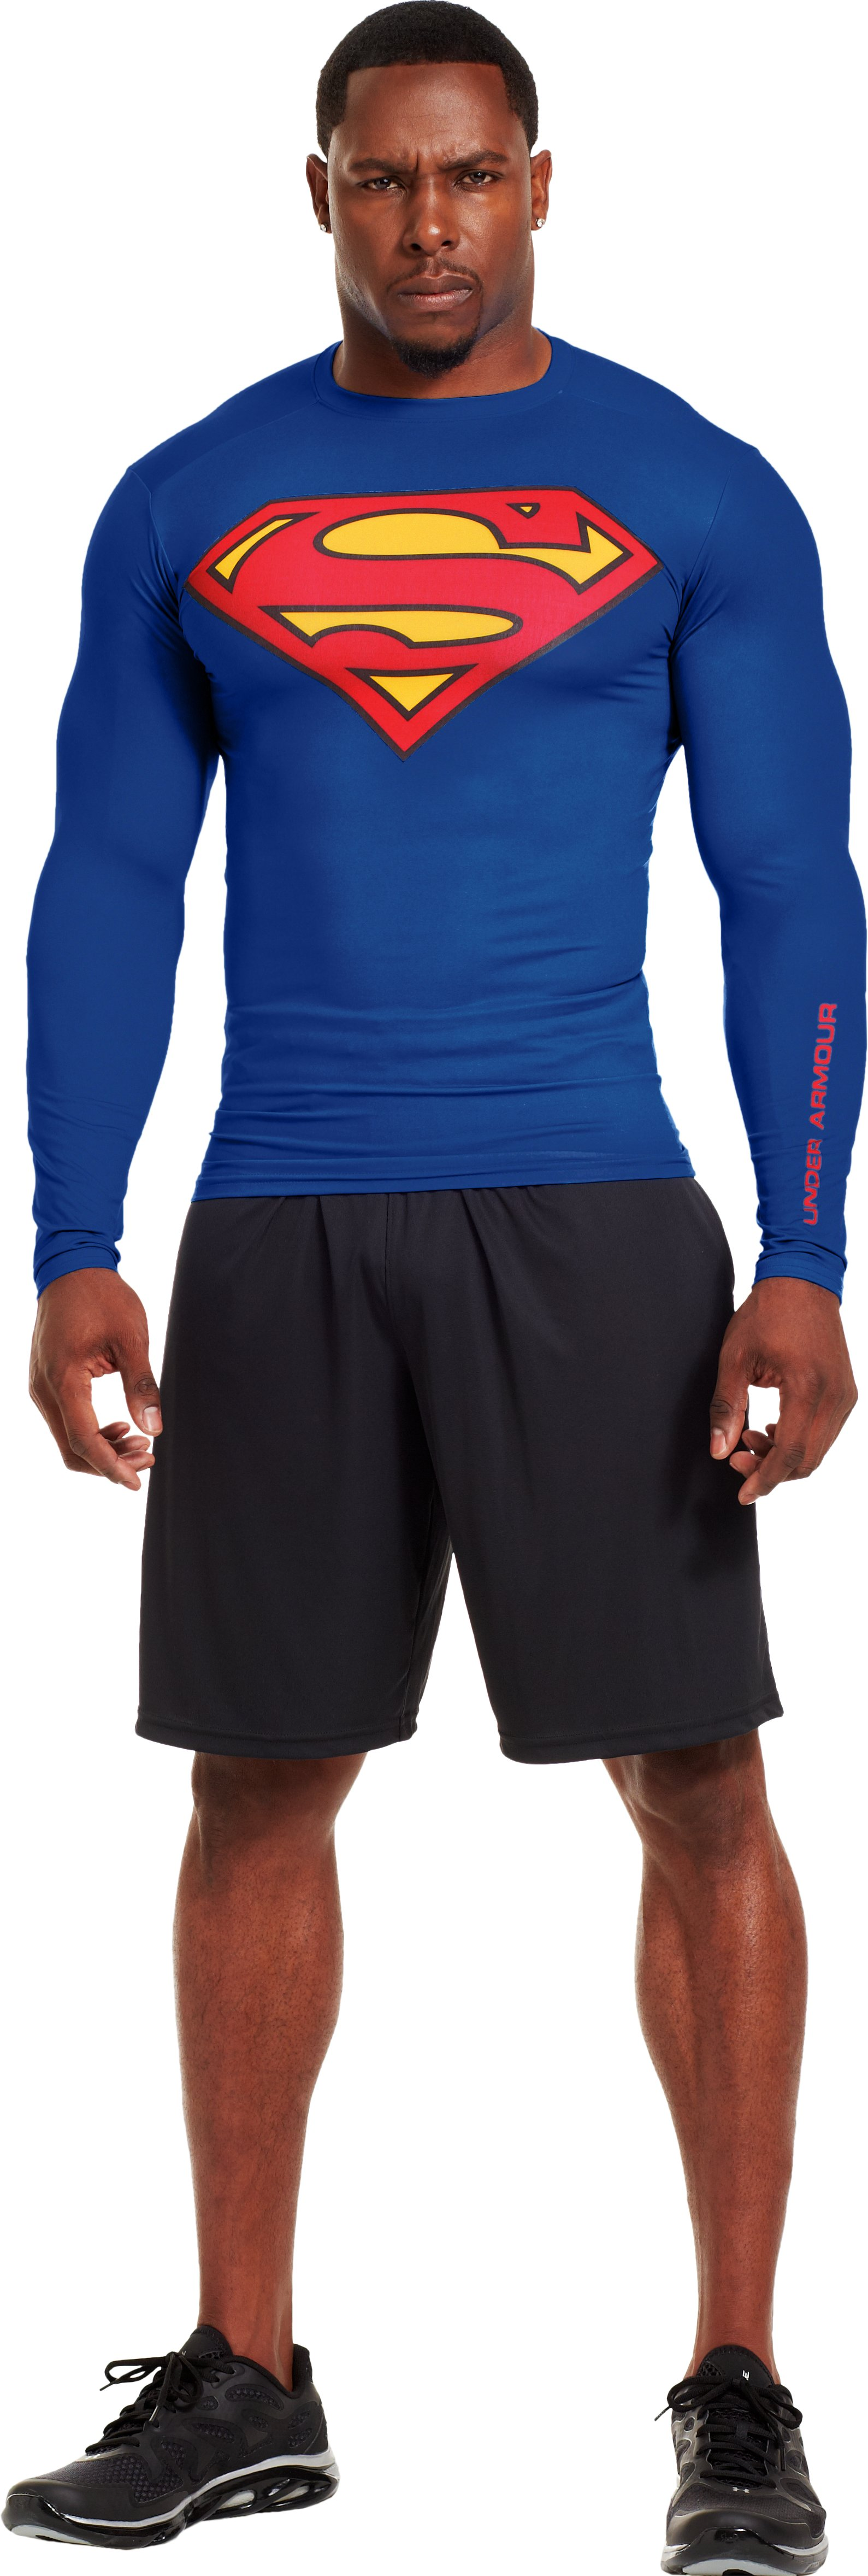 Men's Under Armour® Alter Ego Compression Long Sleeve Shirt, Royal, zoomed image